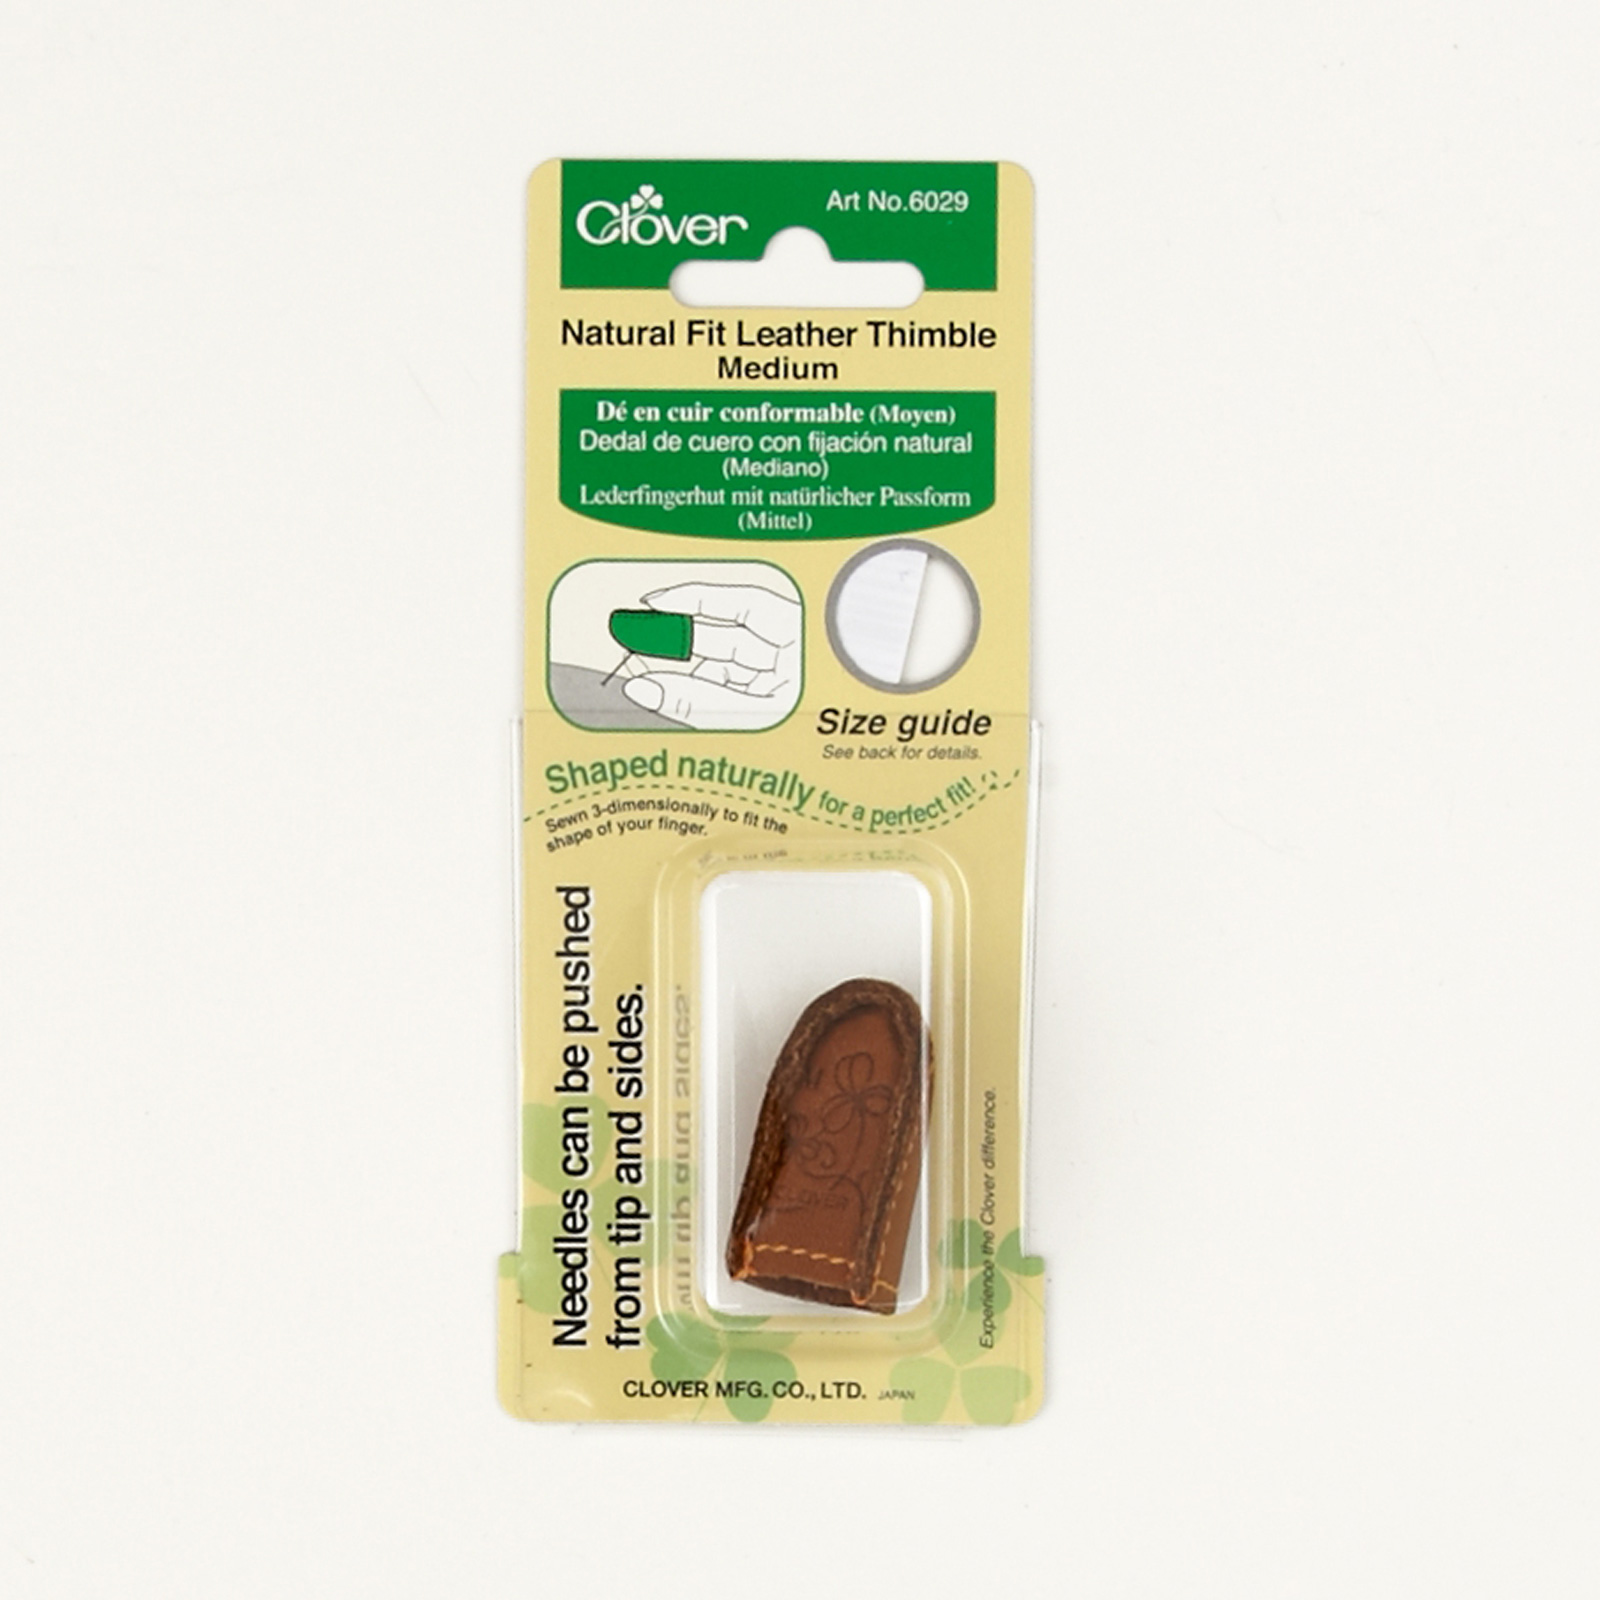 Clover Natural Fit Leather Thimble Medium by Clover Needlecraft in USA